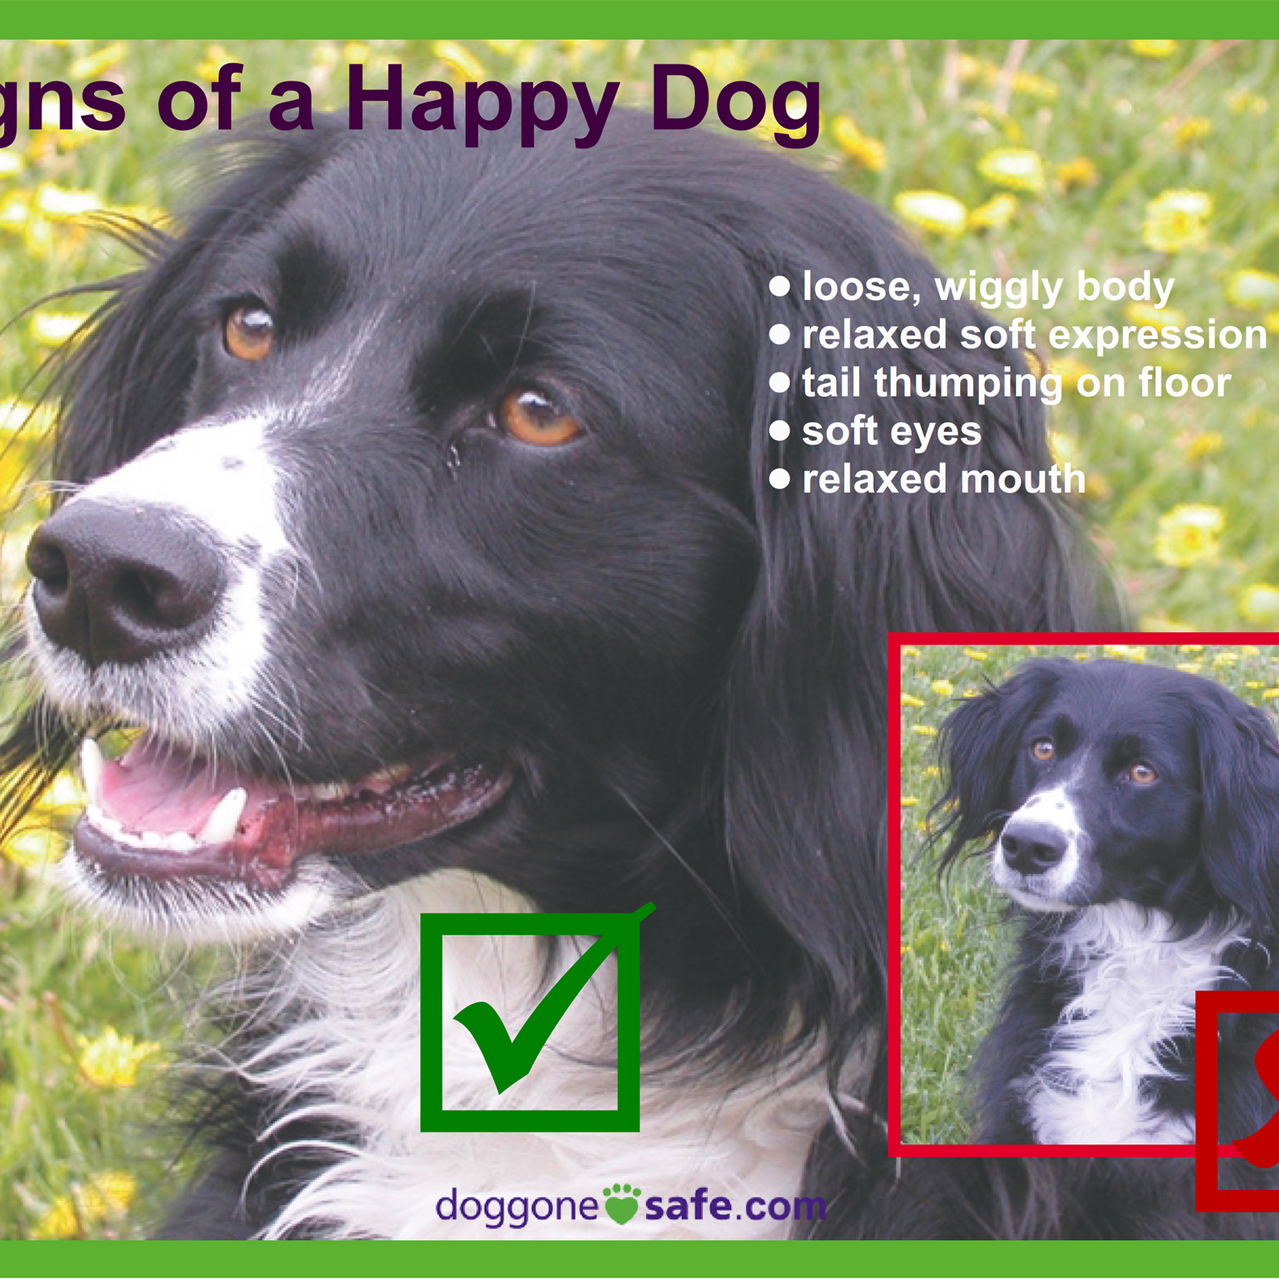 Signs of a Happy Dog and Stay Away_003